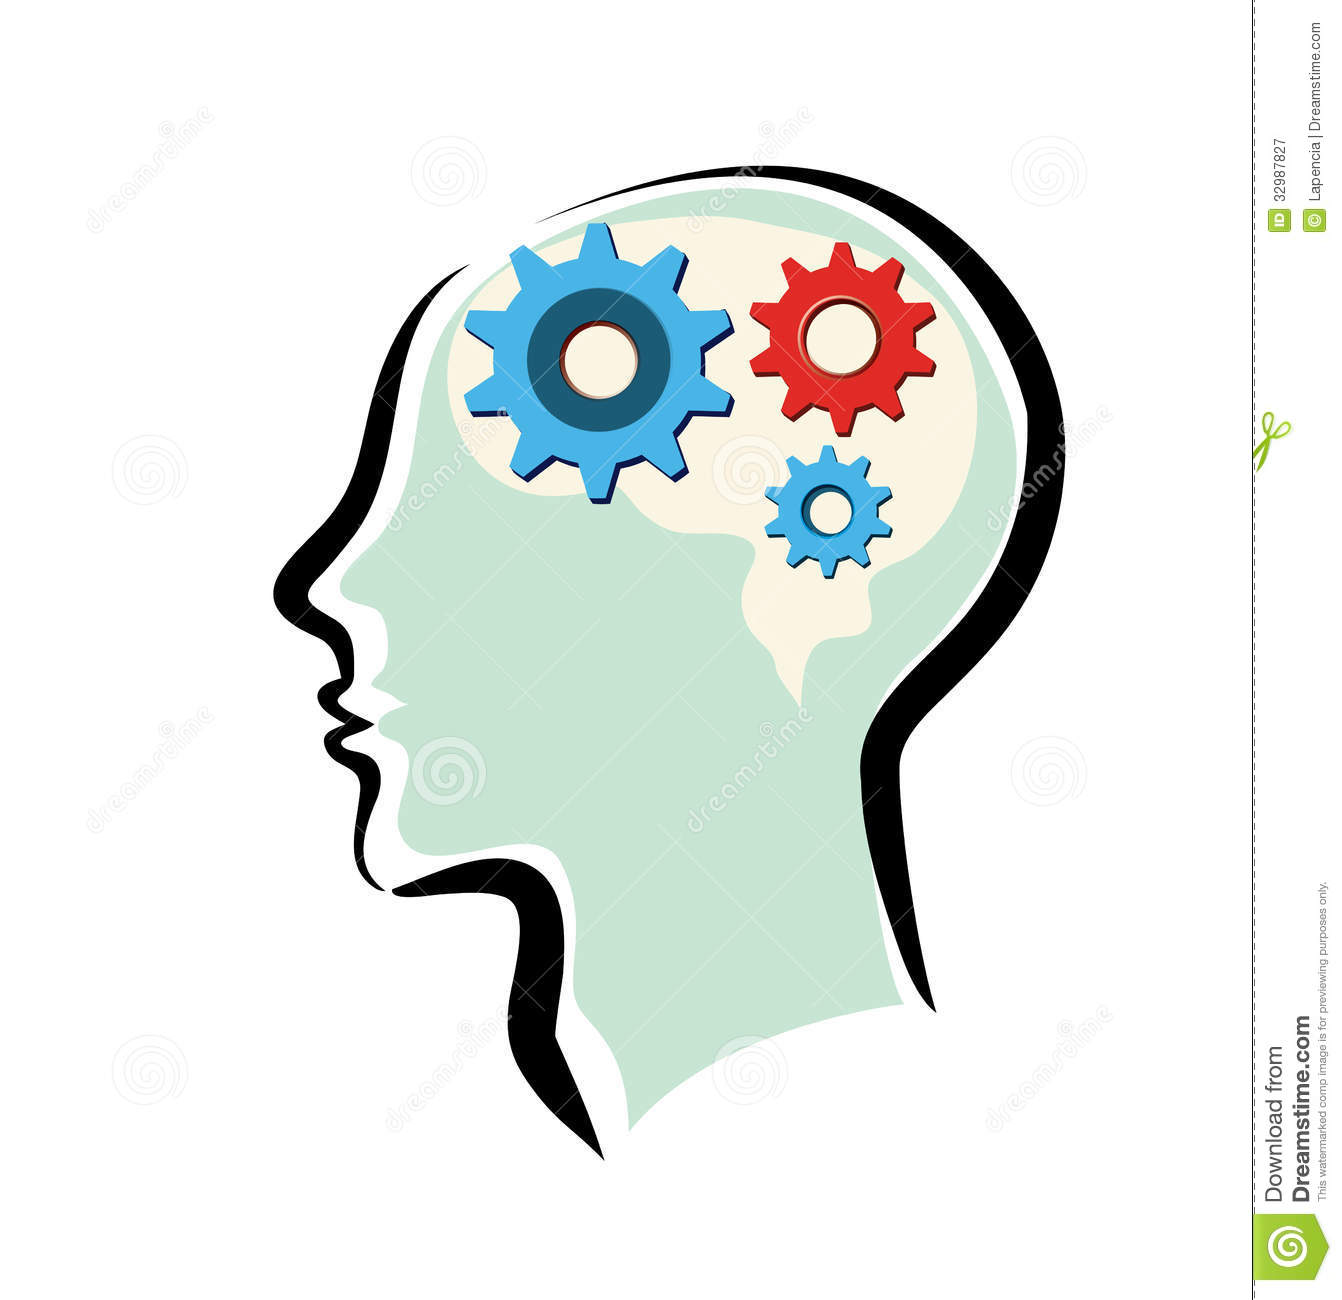 Animated thinking process clipart.